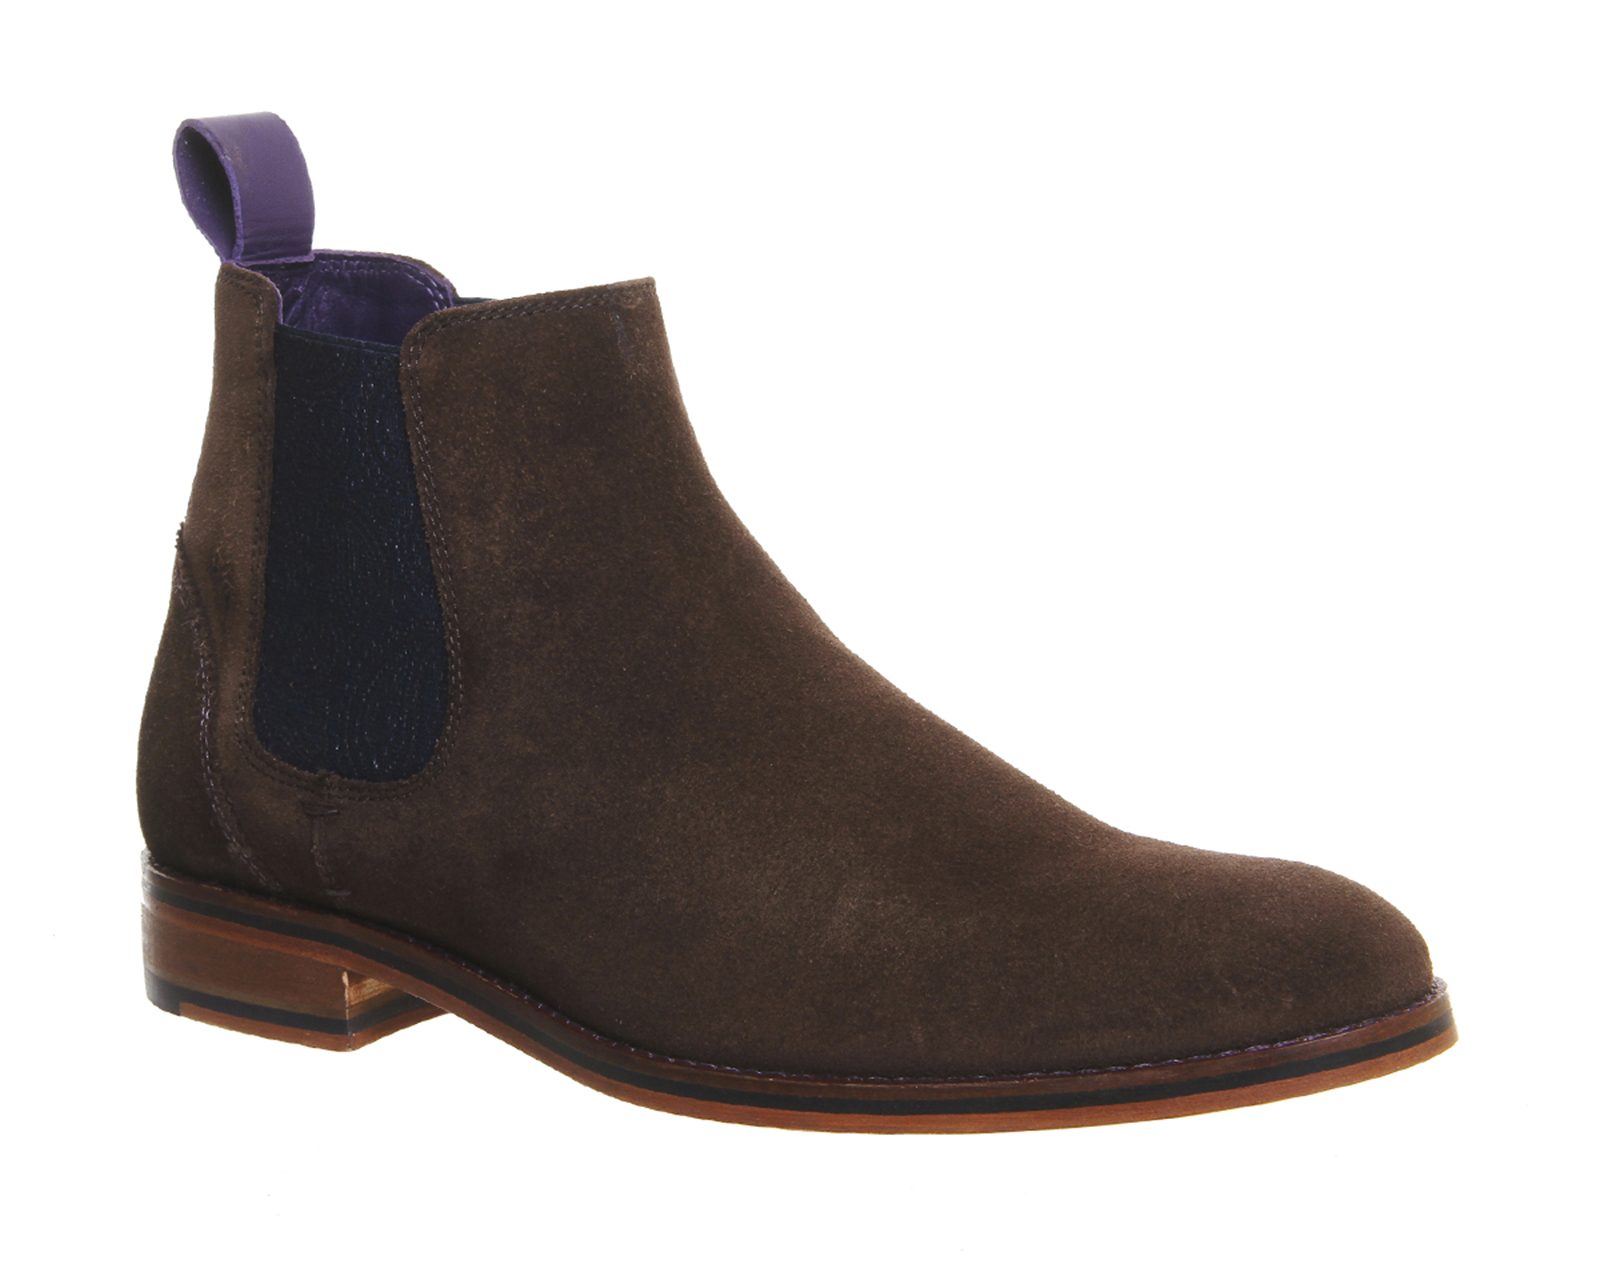 Ted Baker Brown Suede Shoes